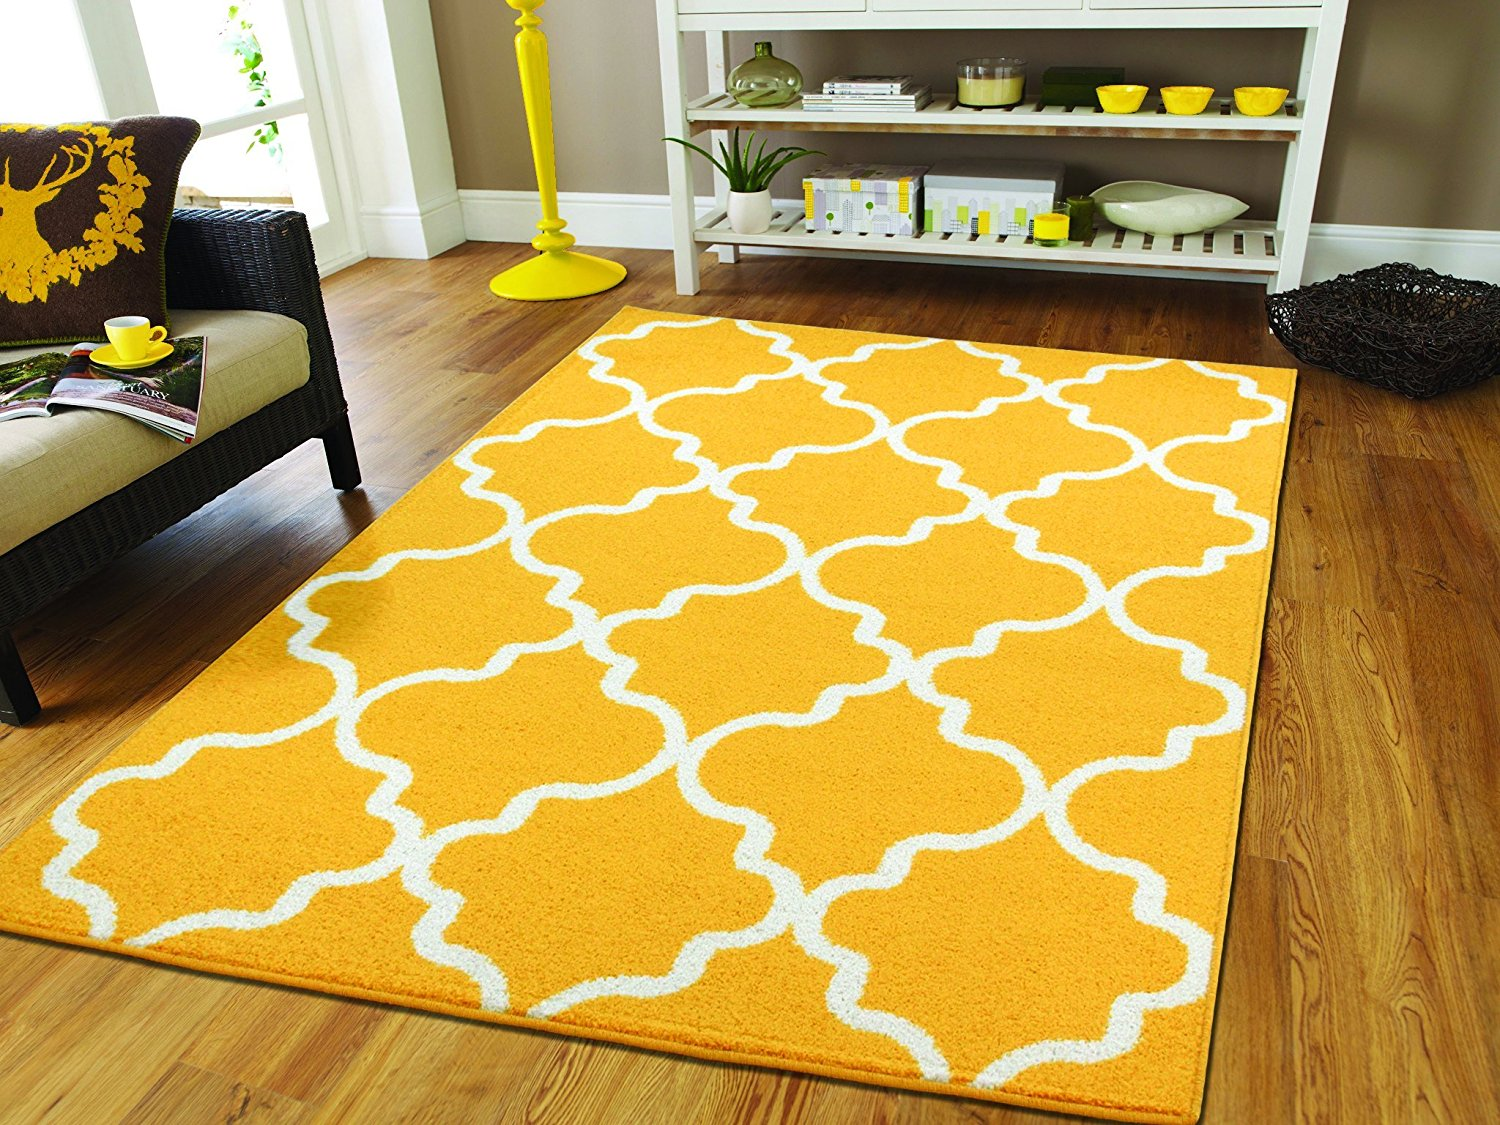 yellow area rug living room light airy design luxury rugs for bedroom 5x8 contemporary on clearance morrocan trellis 5x7 under50